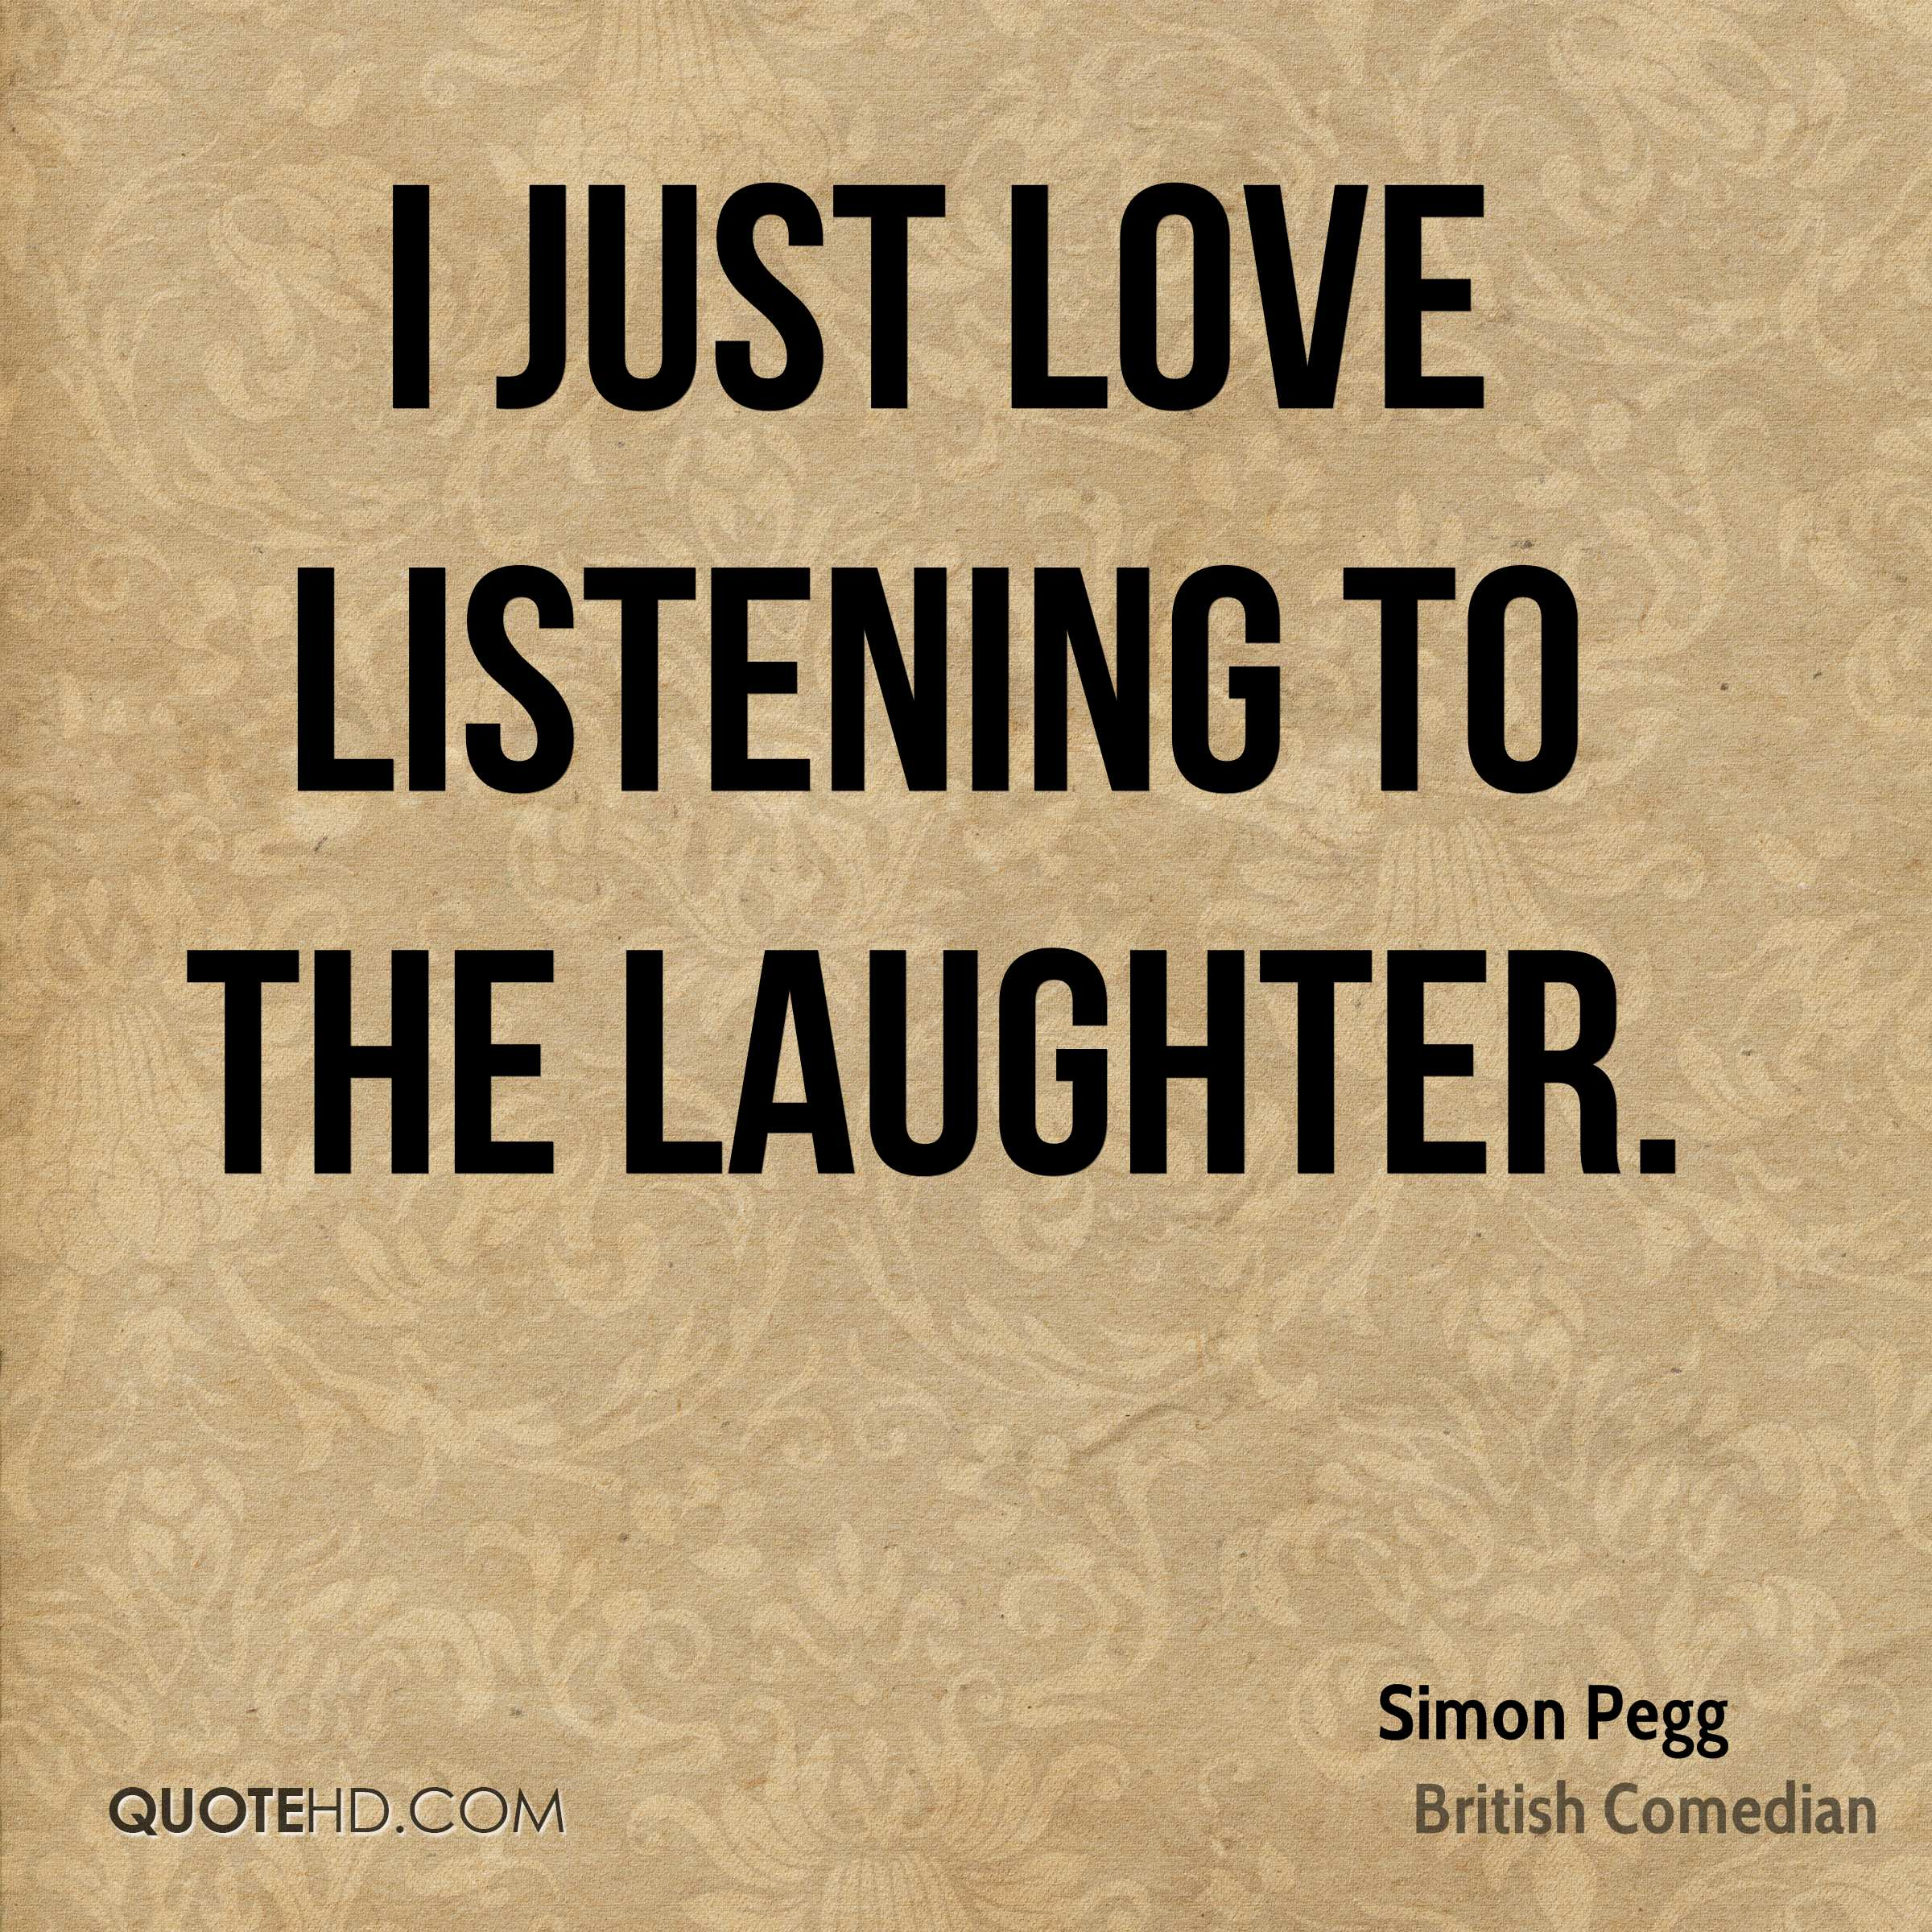 I just love listening to the laughter.